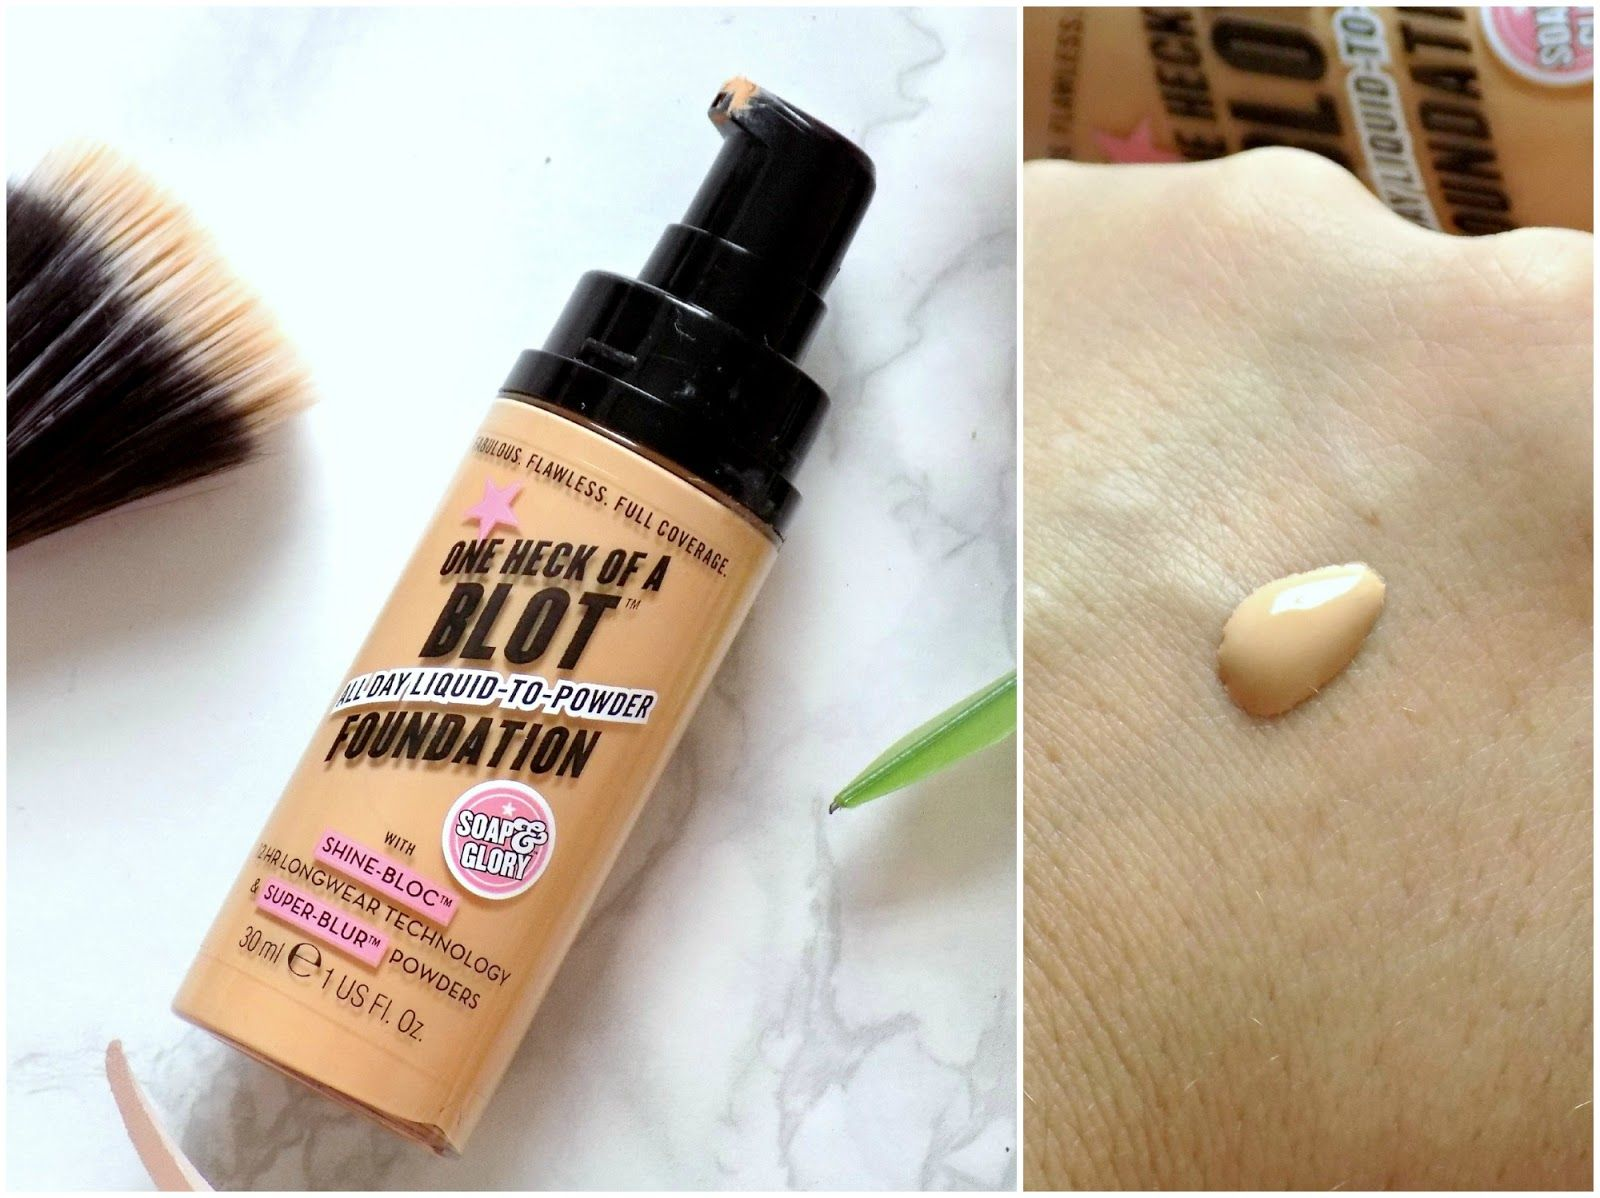 Absolute BEST foundation for oily skin. Amazing full